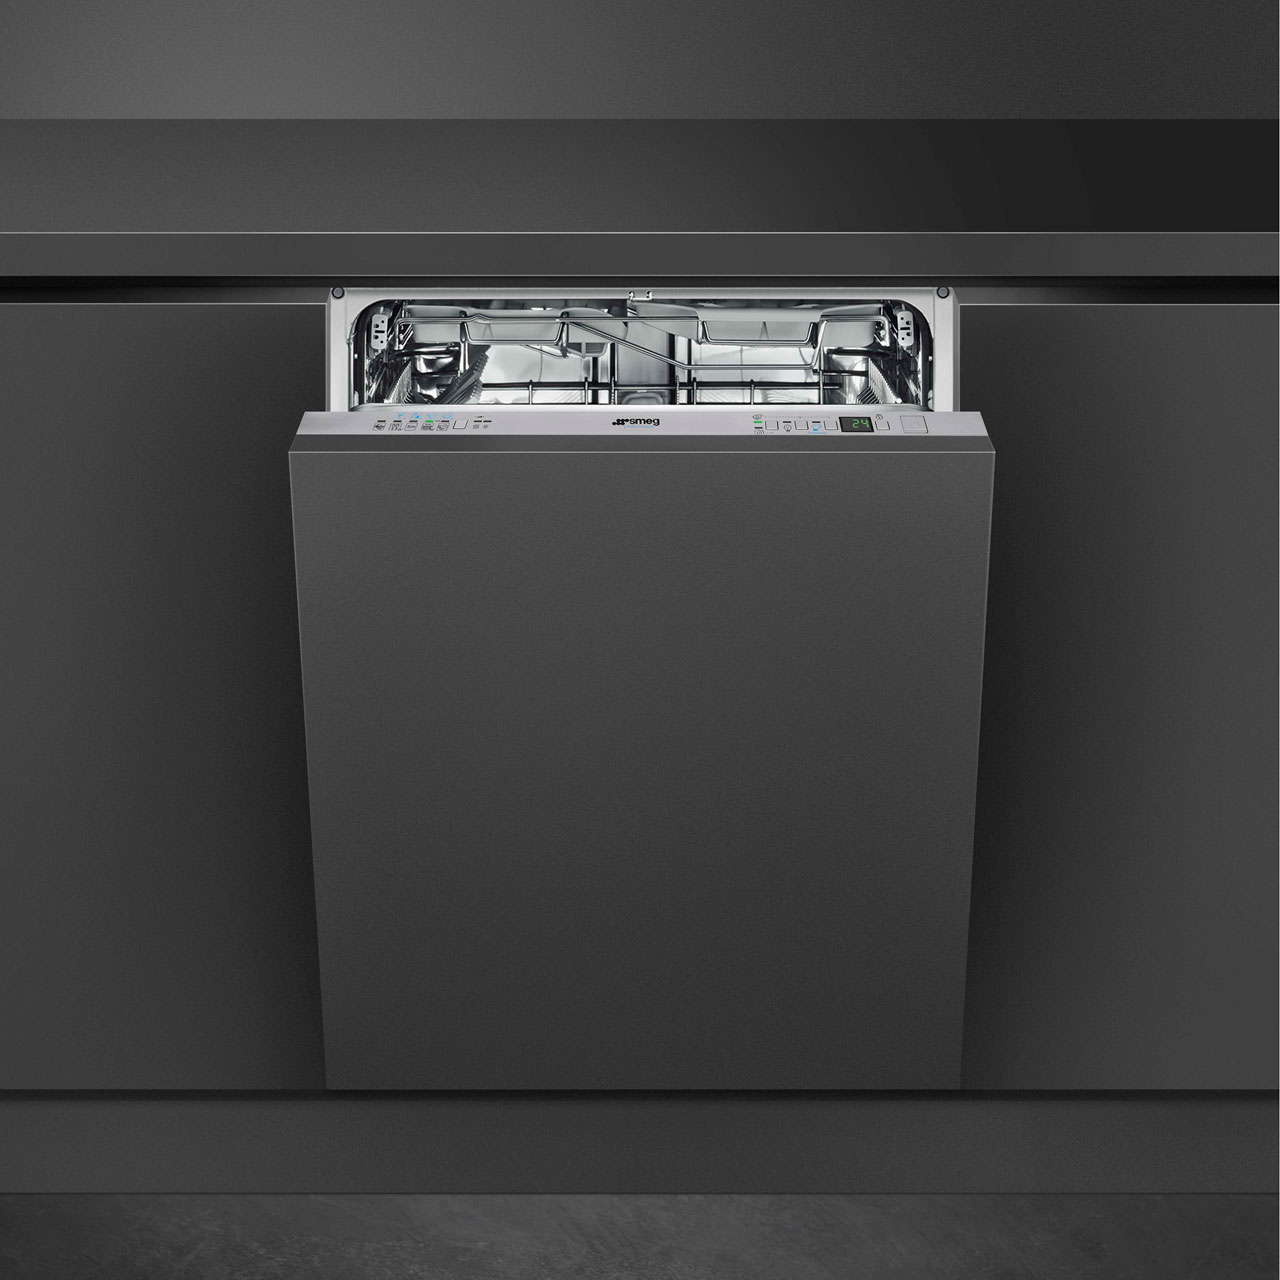 Smeg Semi-Professional STP364S Commercial Fully Integrated Standard Dishwasher review